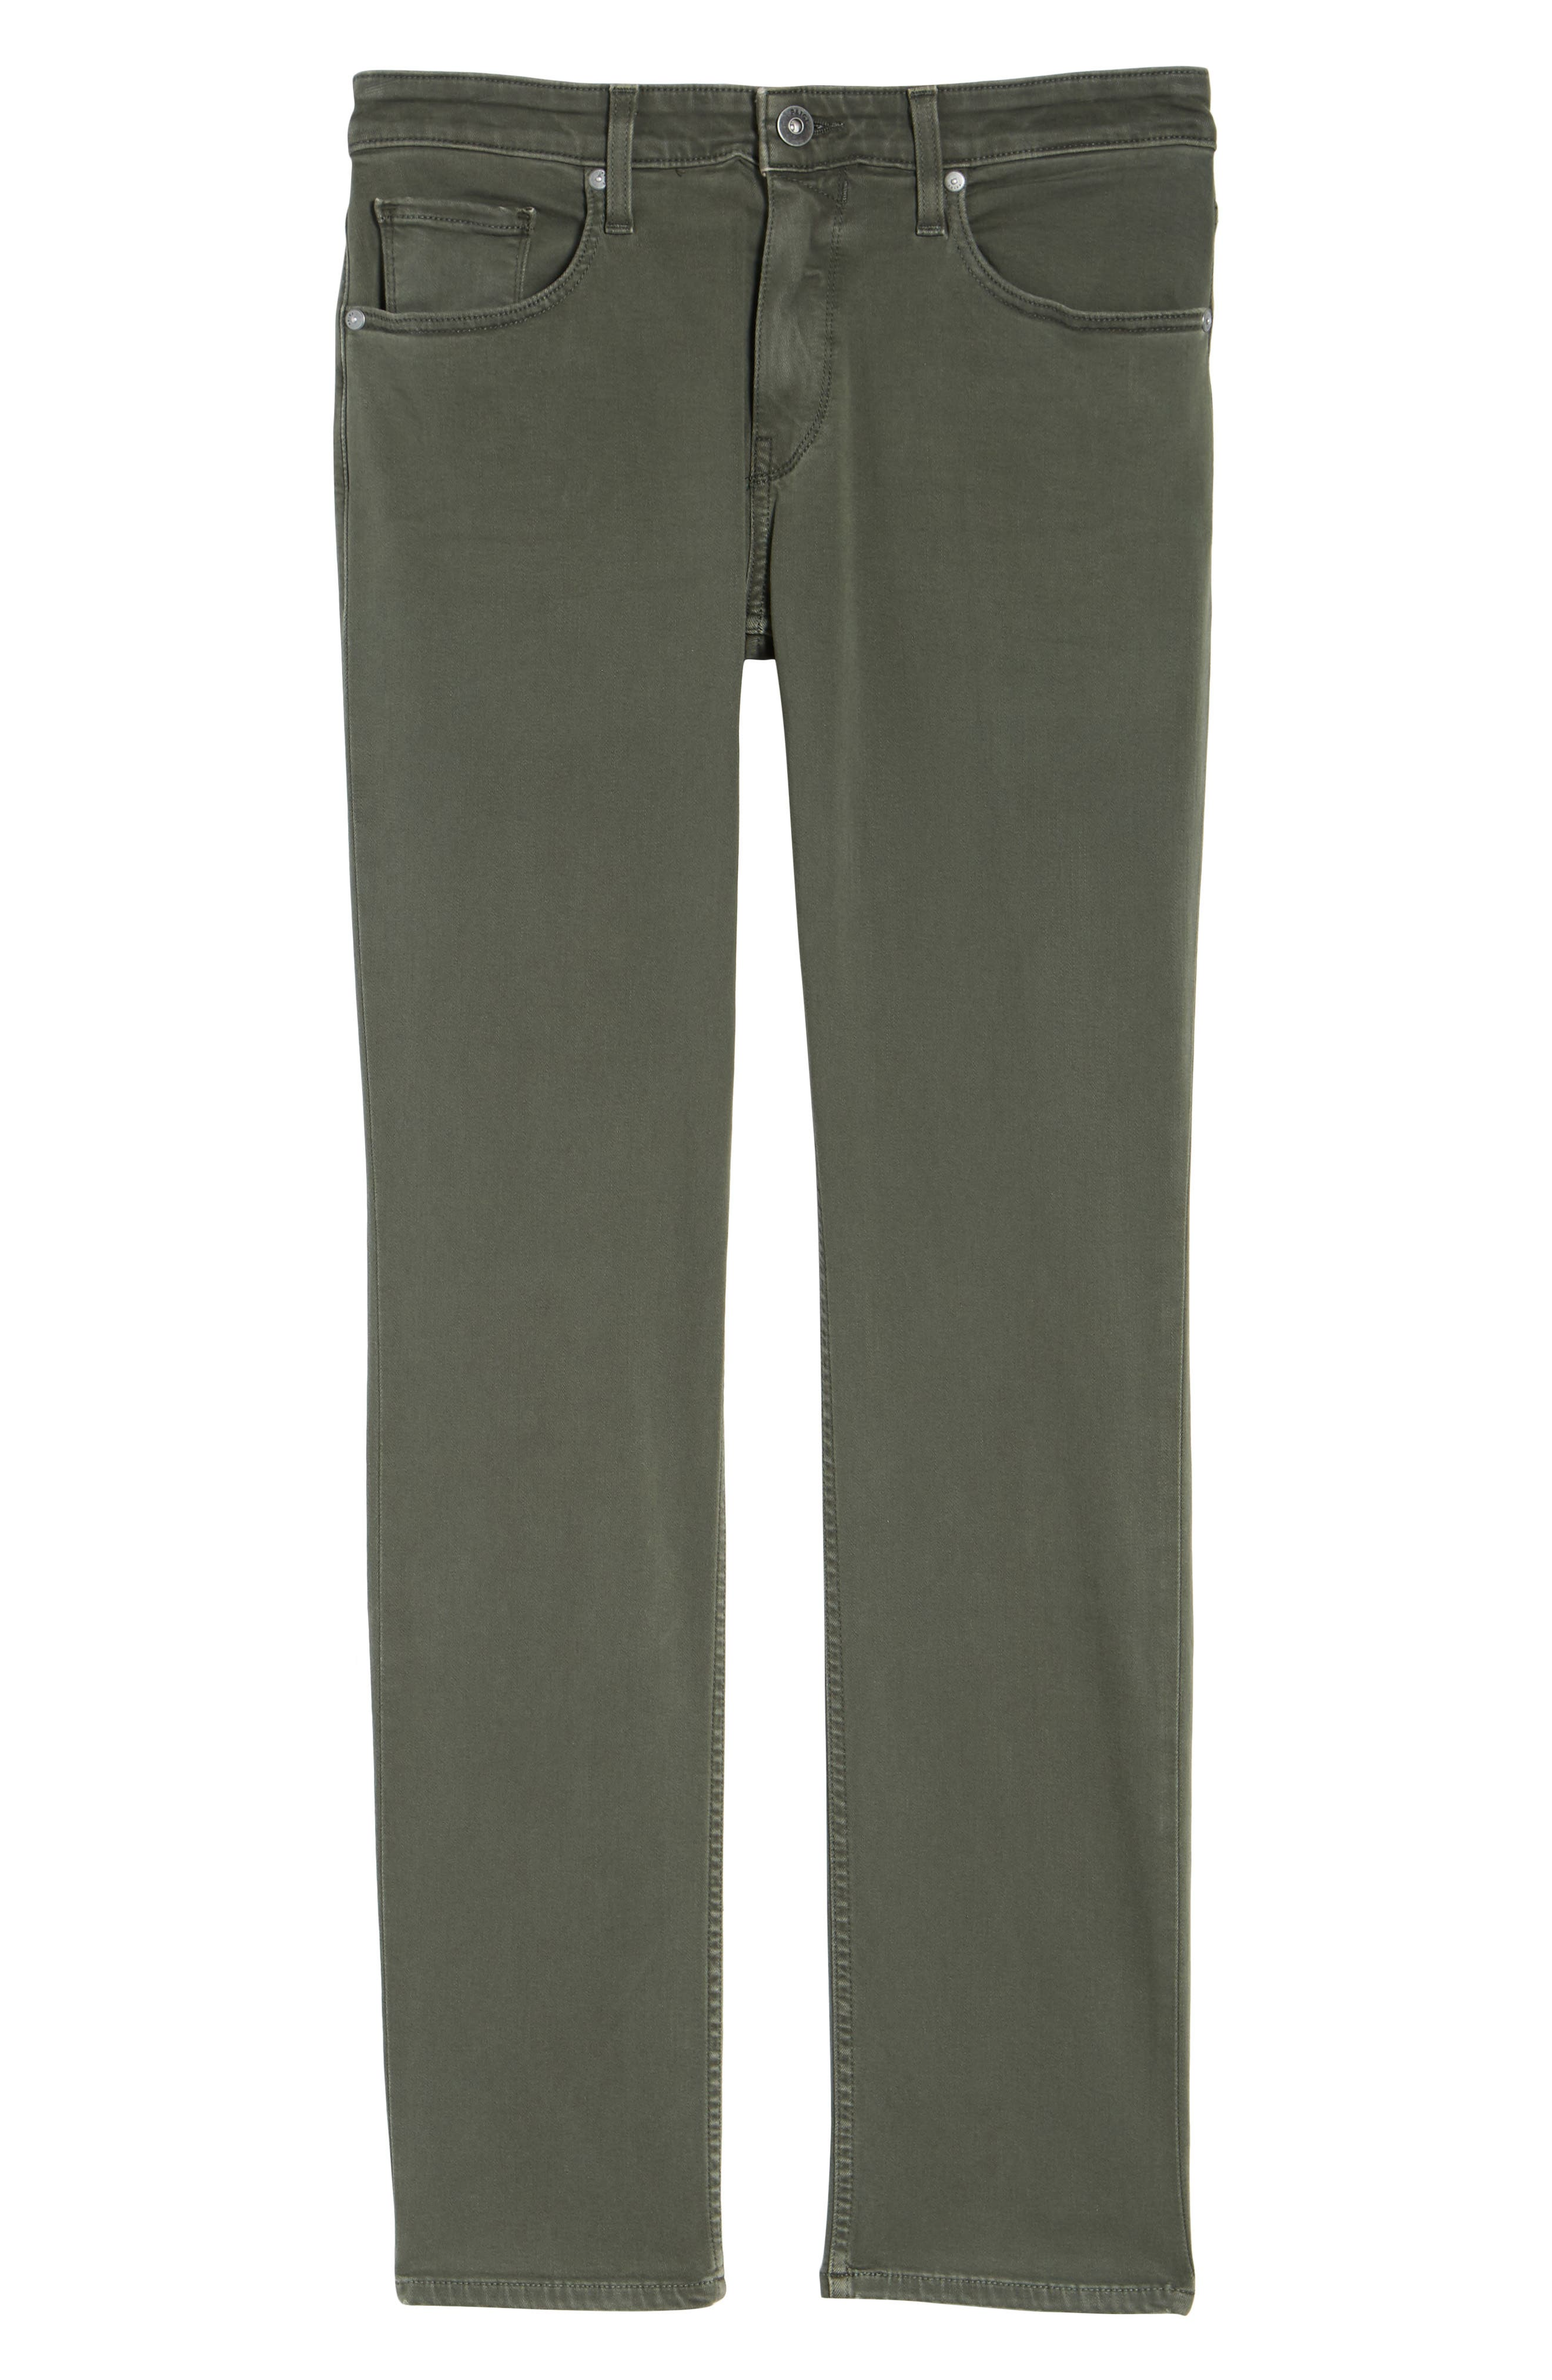 Transcend - Federal Slim Straight Leg Jeans,                             Alternate thumbnail 6, color,                             Vintage Green Fields